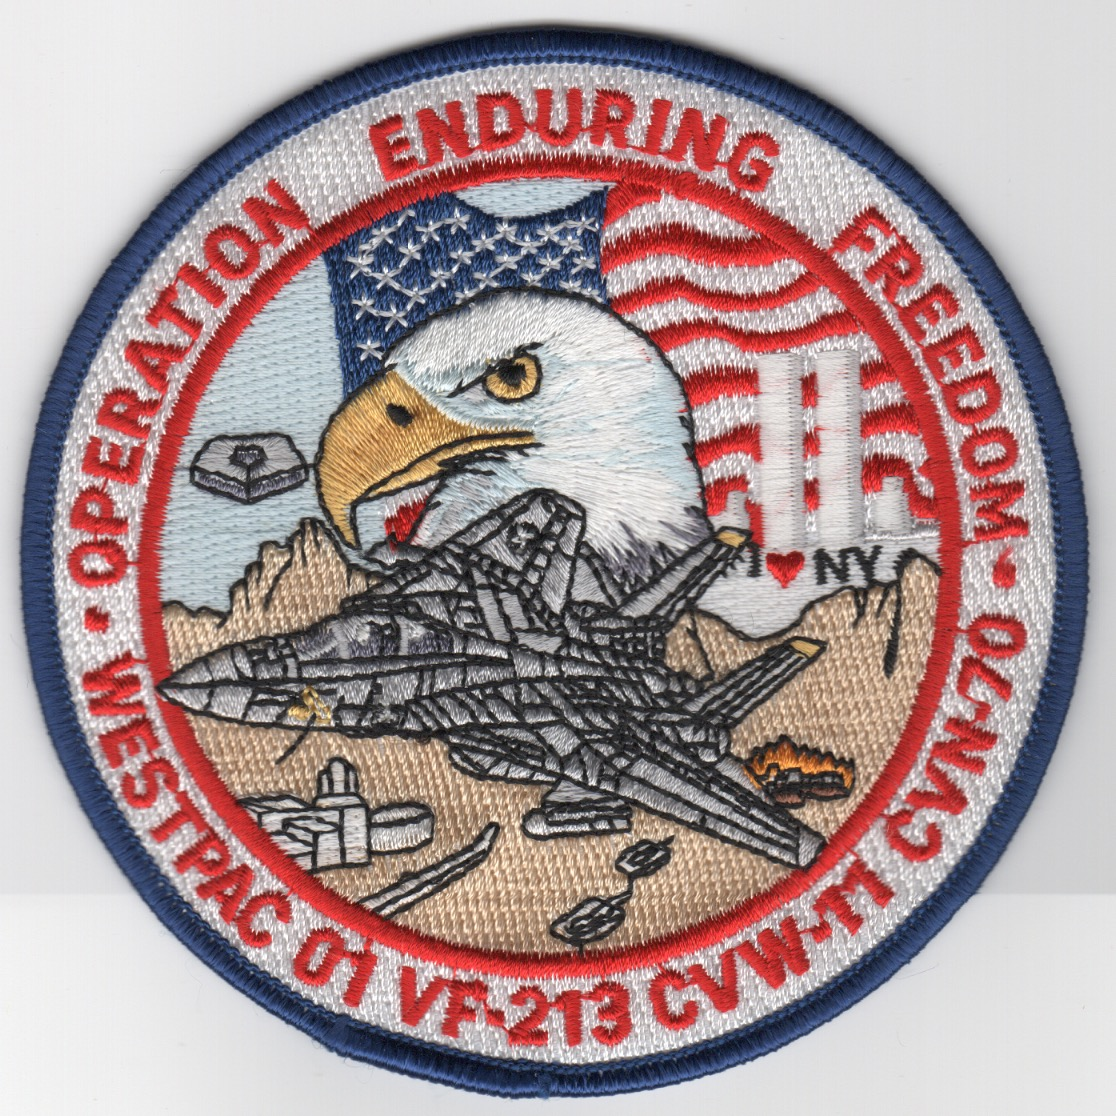 478) VF-213/CVN-70 2001 OEF/WESTPAC Patch